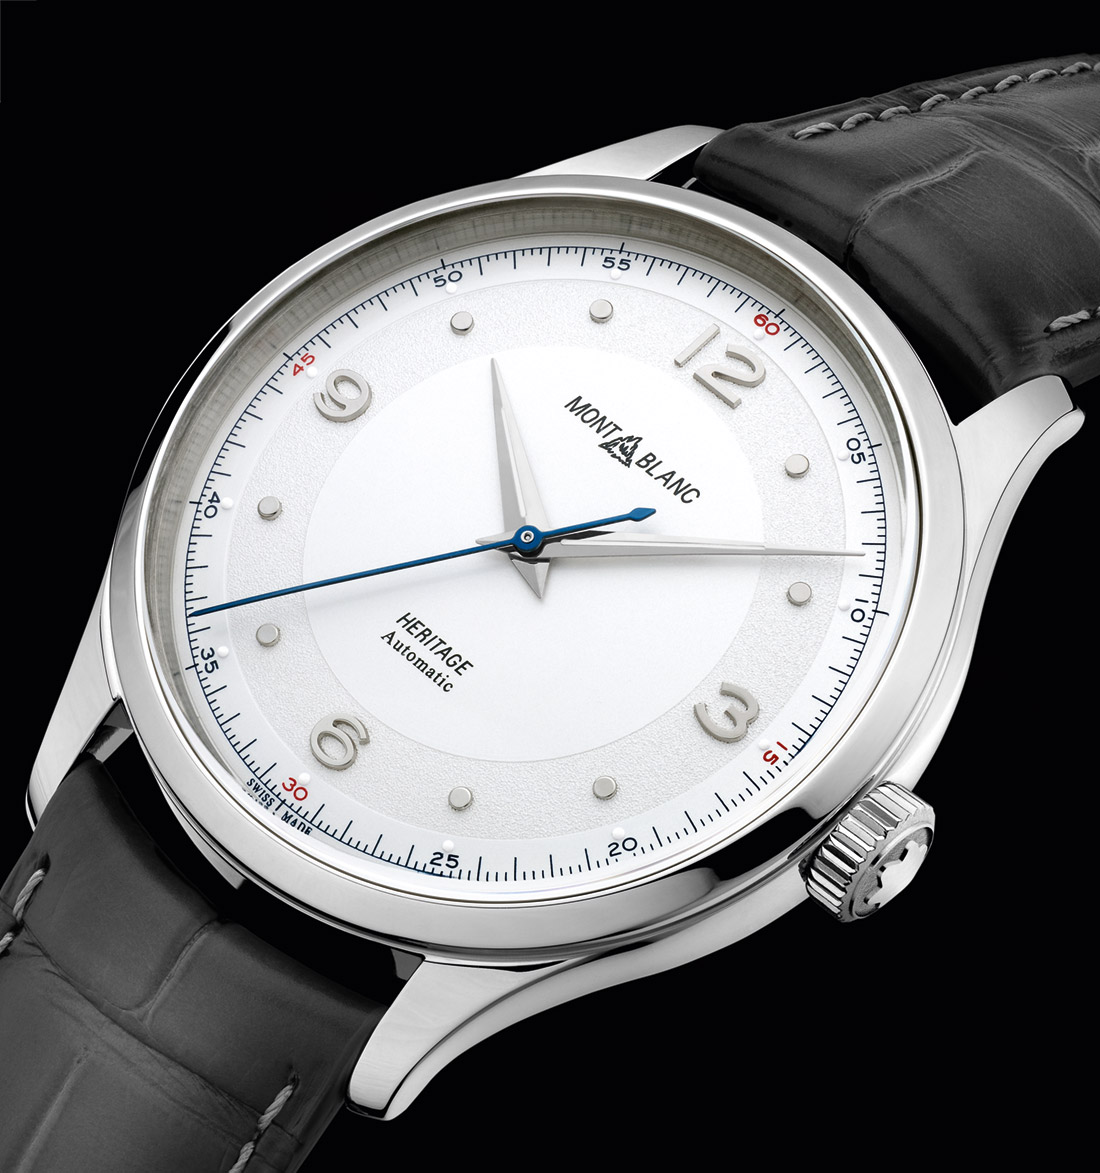 Montblanc releases six new watches to its Heritage line for 2019